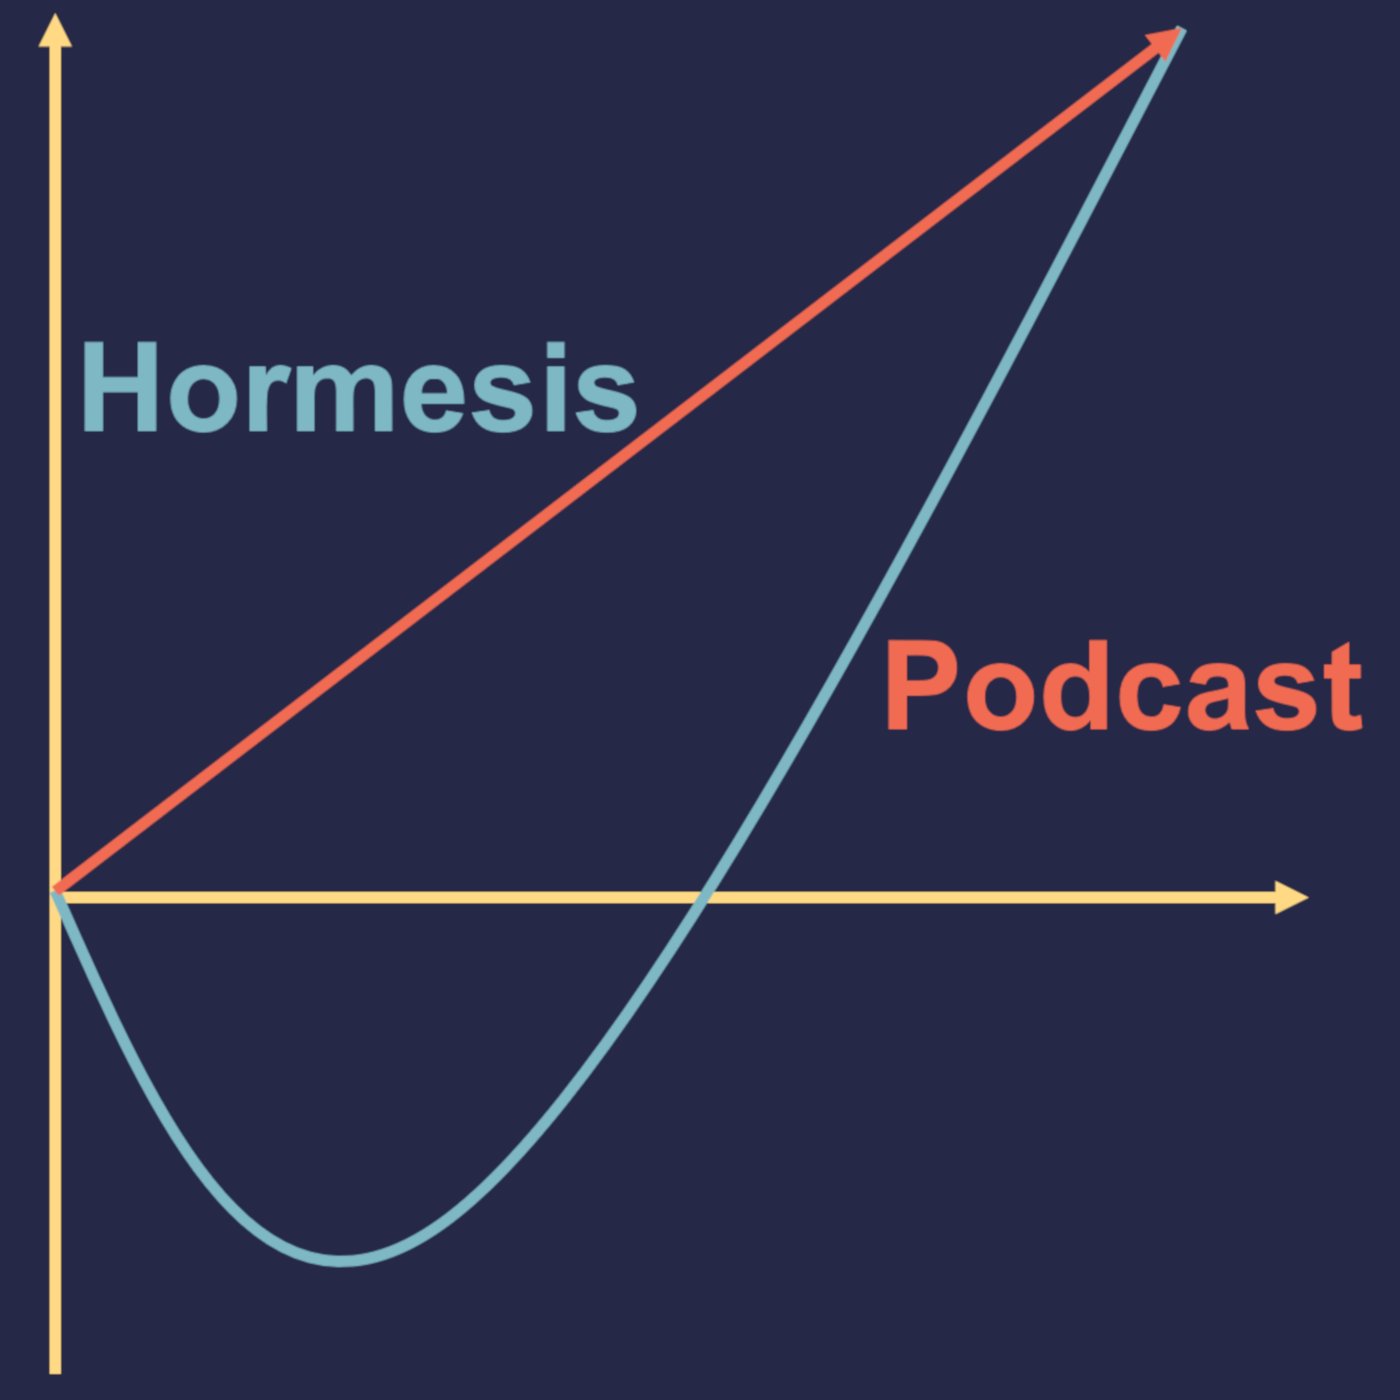 Hormesis Podcast #1 - End of the medical physics residency